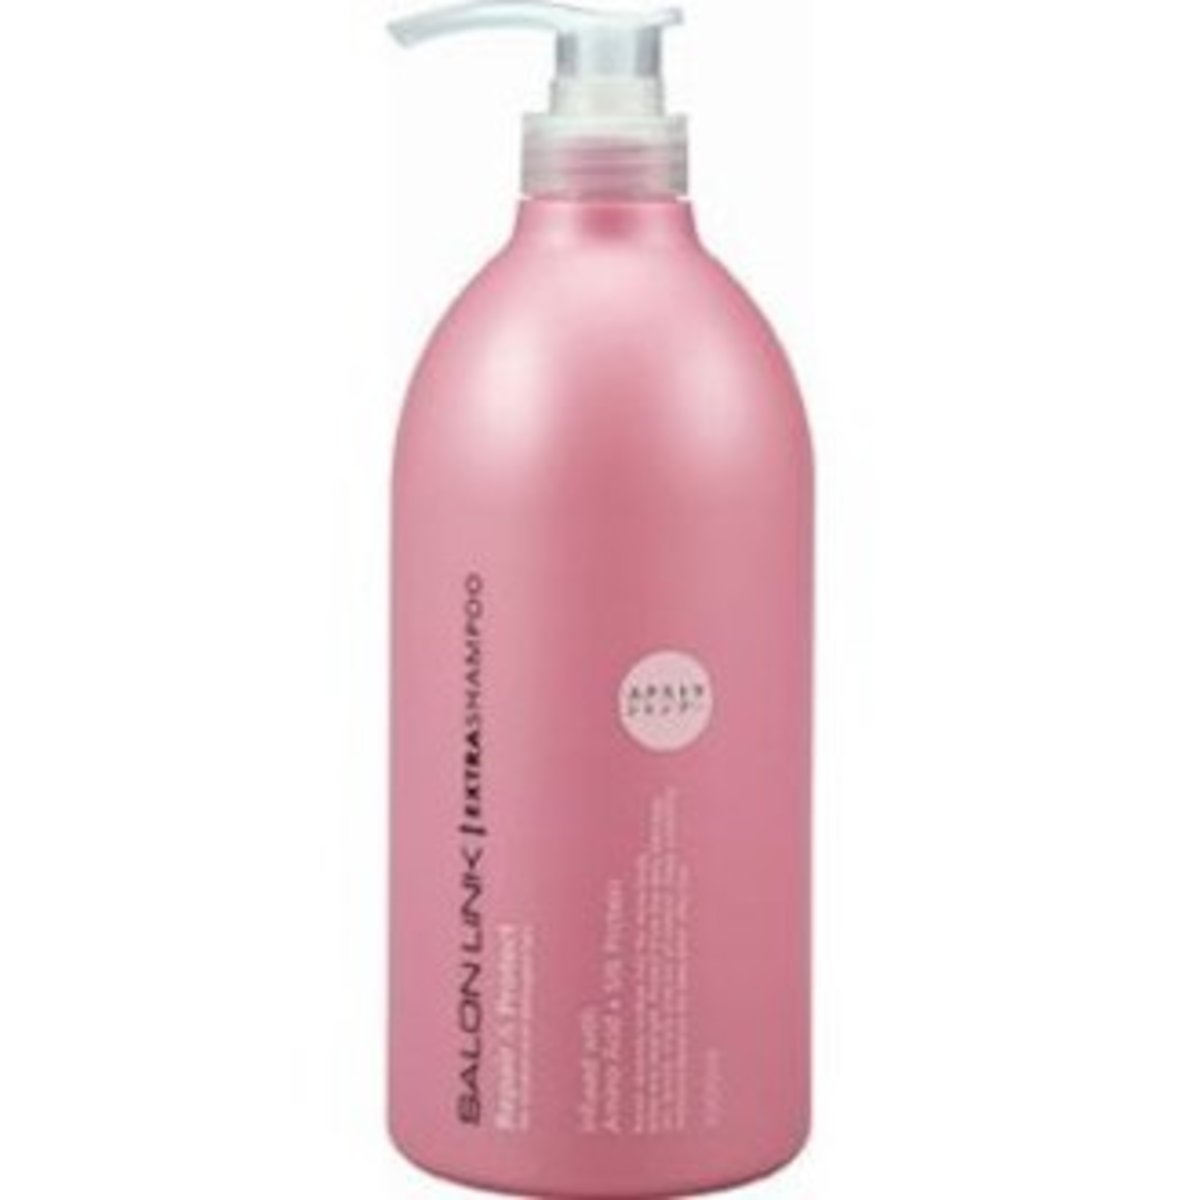 BEAUA- Salon Link Extra Shampoo 1000ml (Parallel Import Product)